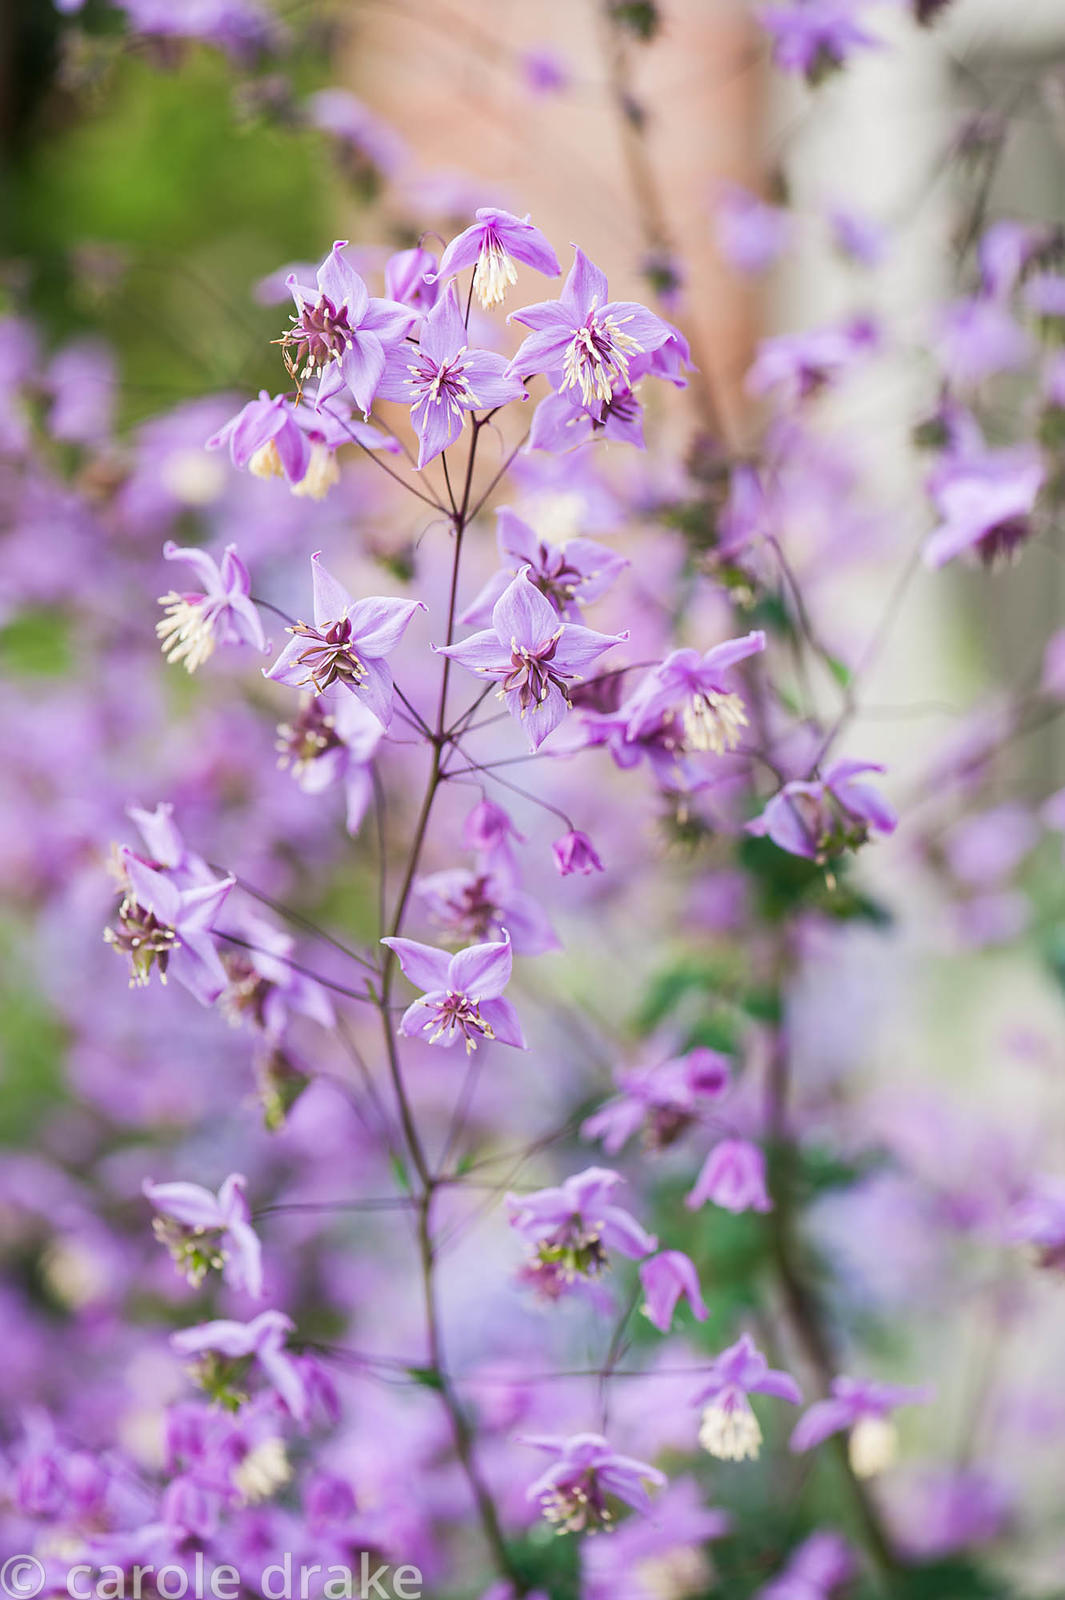 Airy thalictrum flowers. Bosvigo, Truro, Cornwall, UK